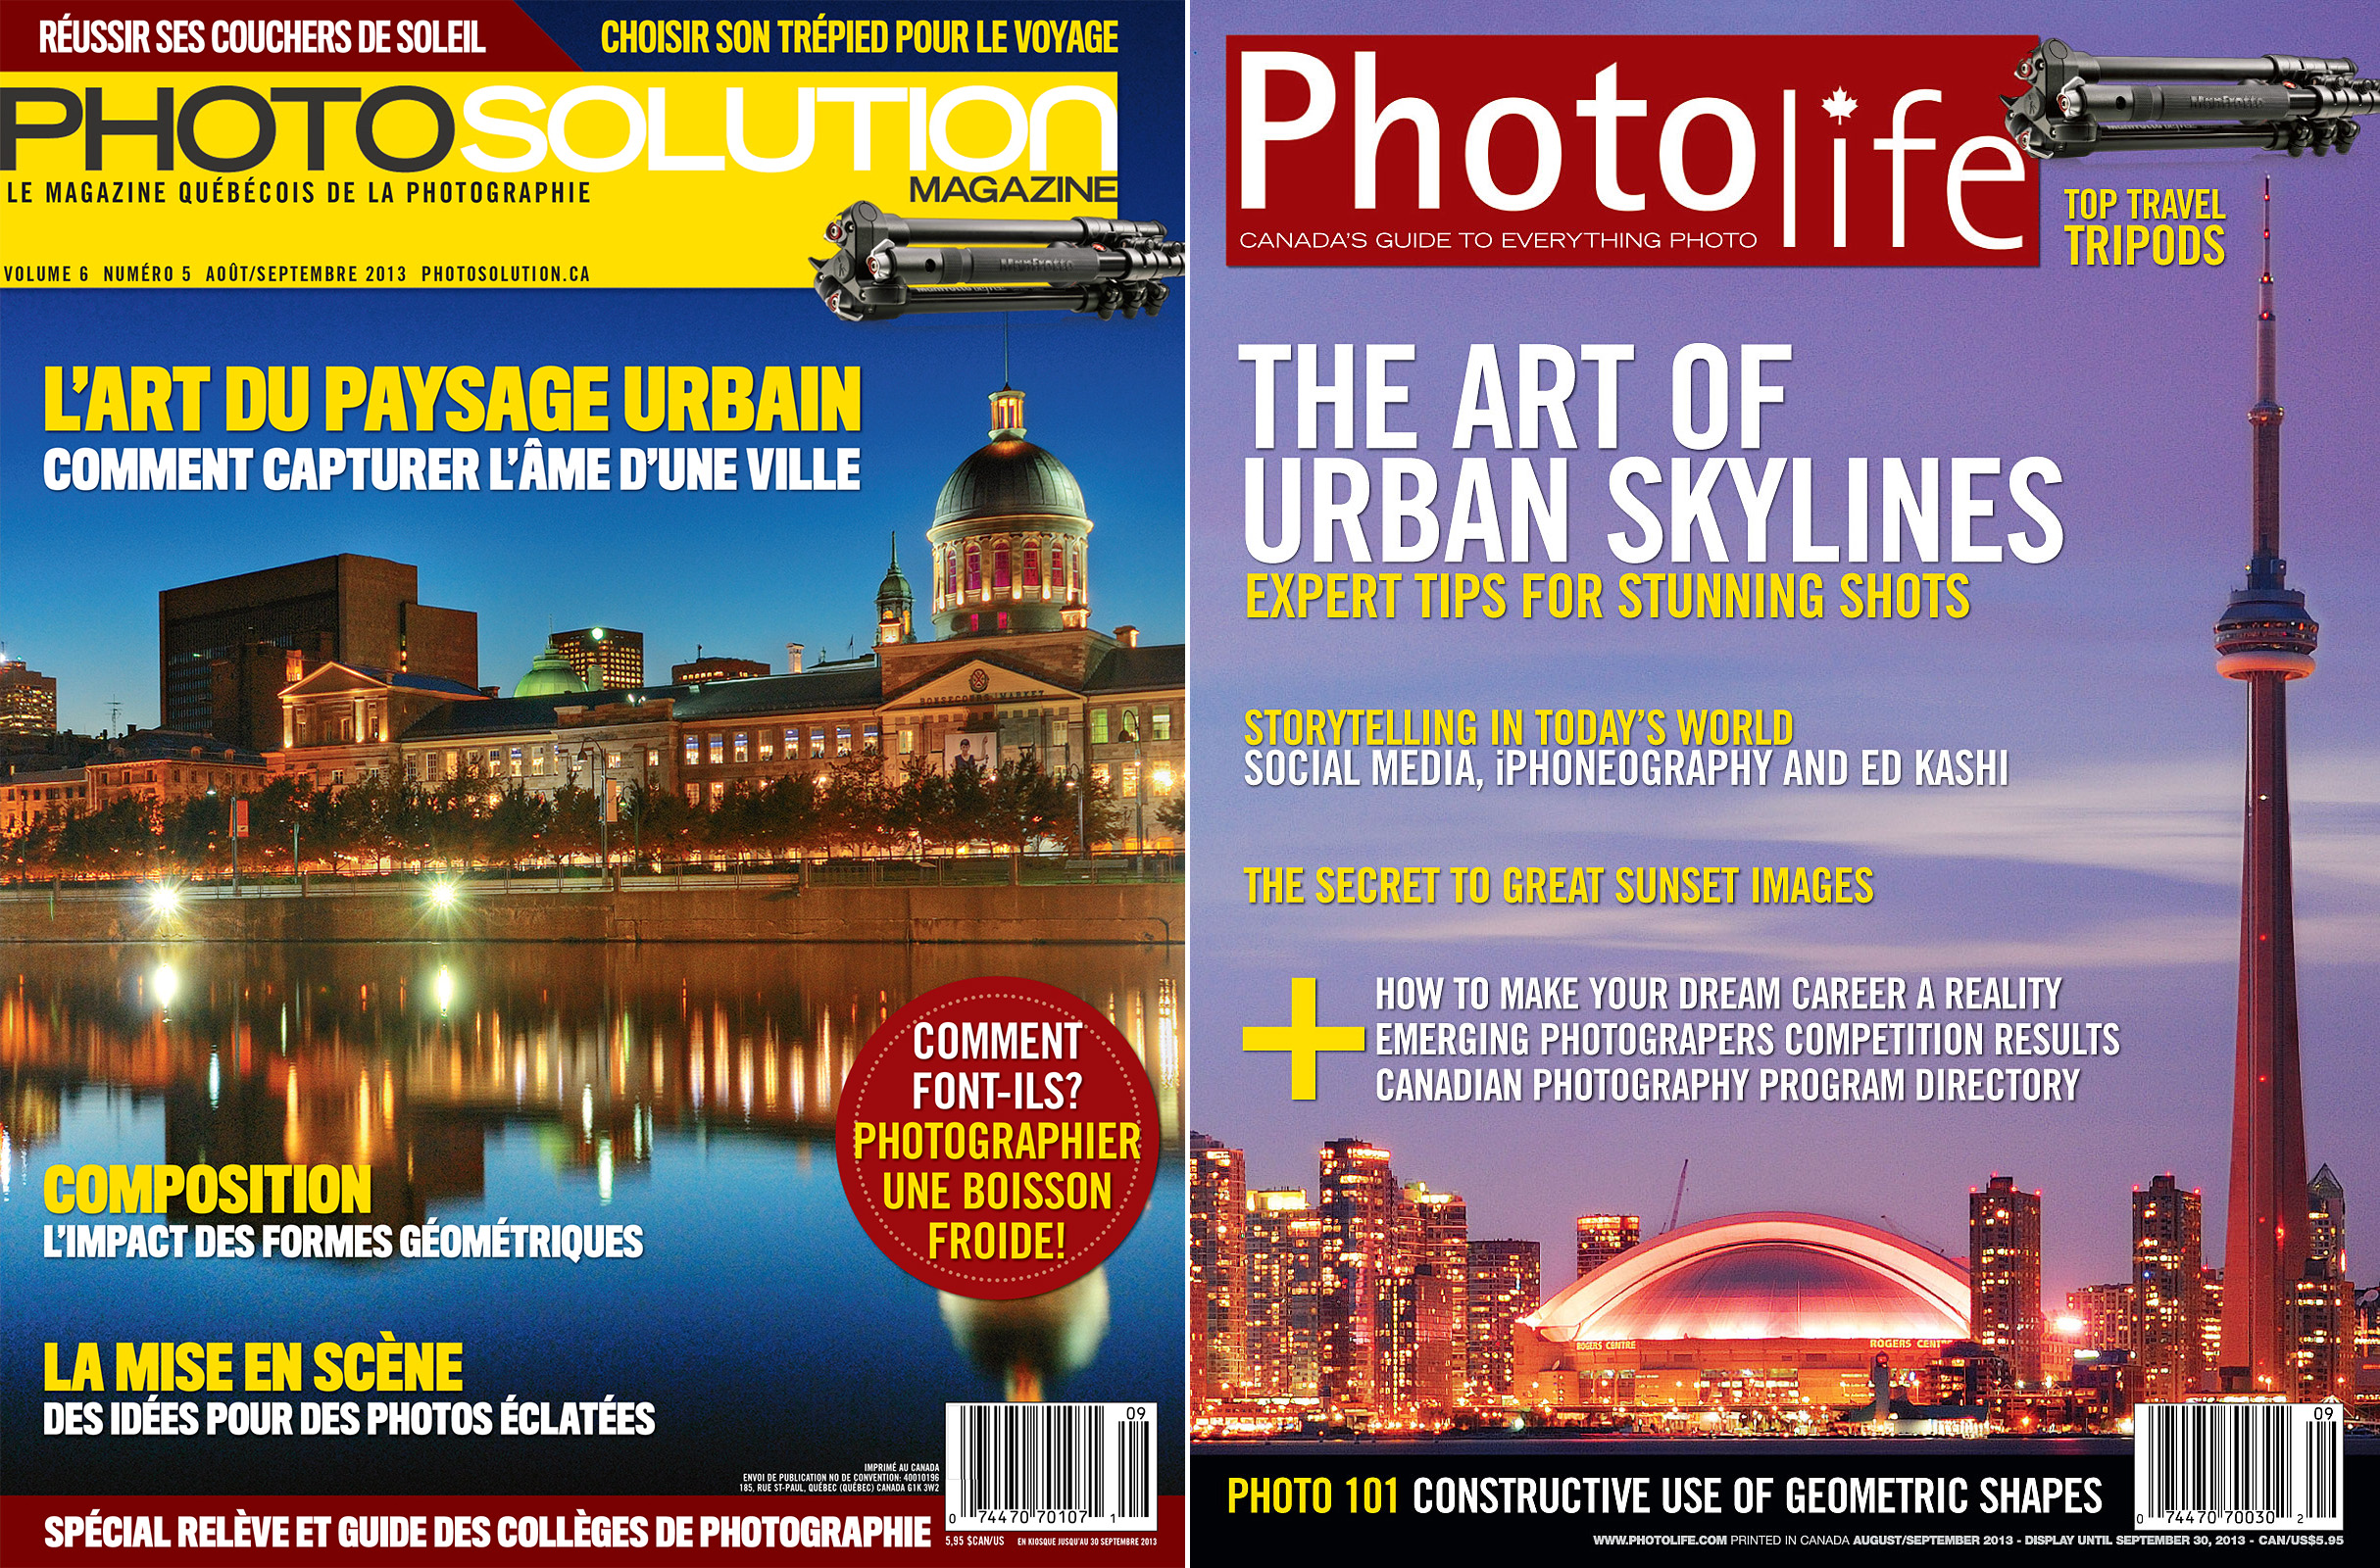 Covers PhotoLife and PhotoSolution - 2013/09